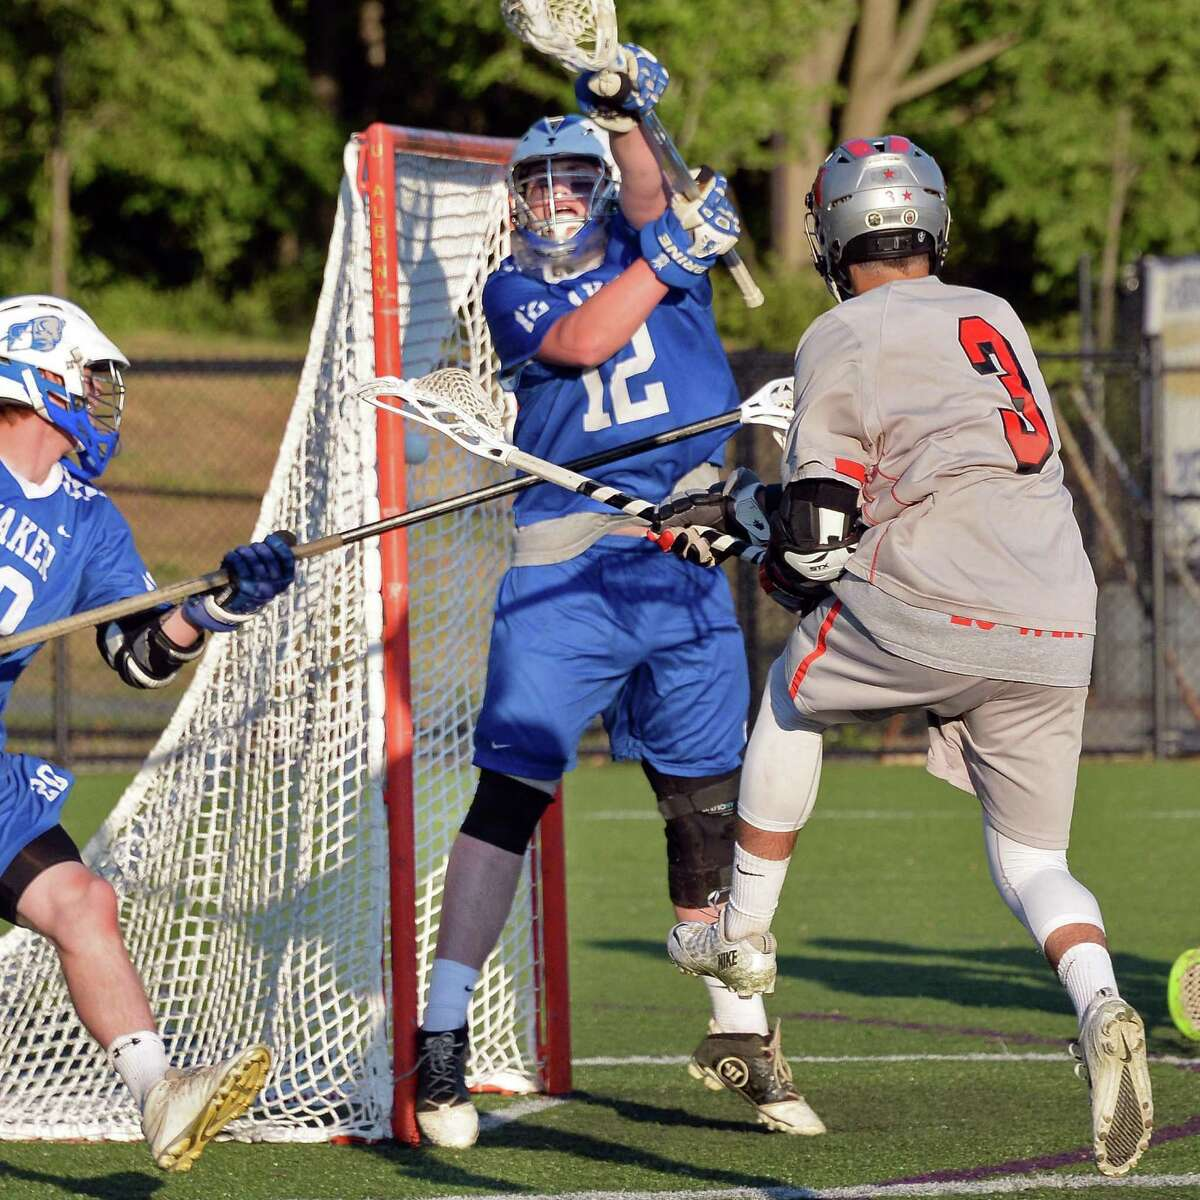 Niskayuna's #3 Evan Maloney, right, scores against Shaker goalie #12 Andrew Leahey during their Section II Class A boys' lacrosse final at John Fallon Field Saturday May 23, 2015, in Albany, NY. (John Carl D'Annibale / Times Union)(John Carl D'Annibale / Times Union)